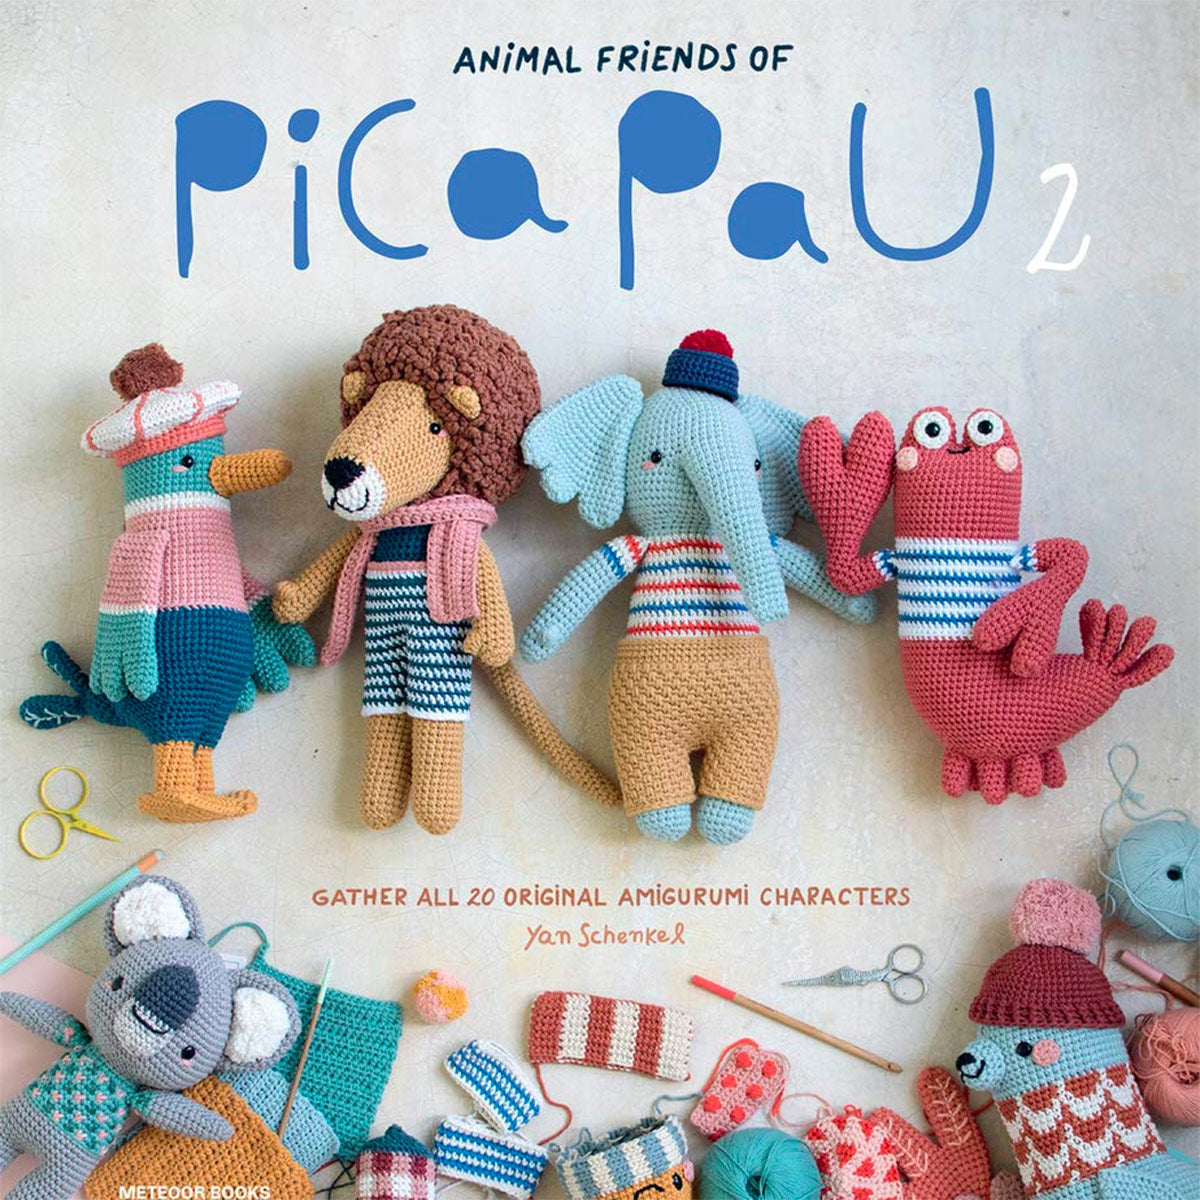 Animal Friends of Pica Pau 2